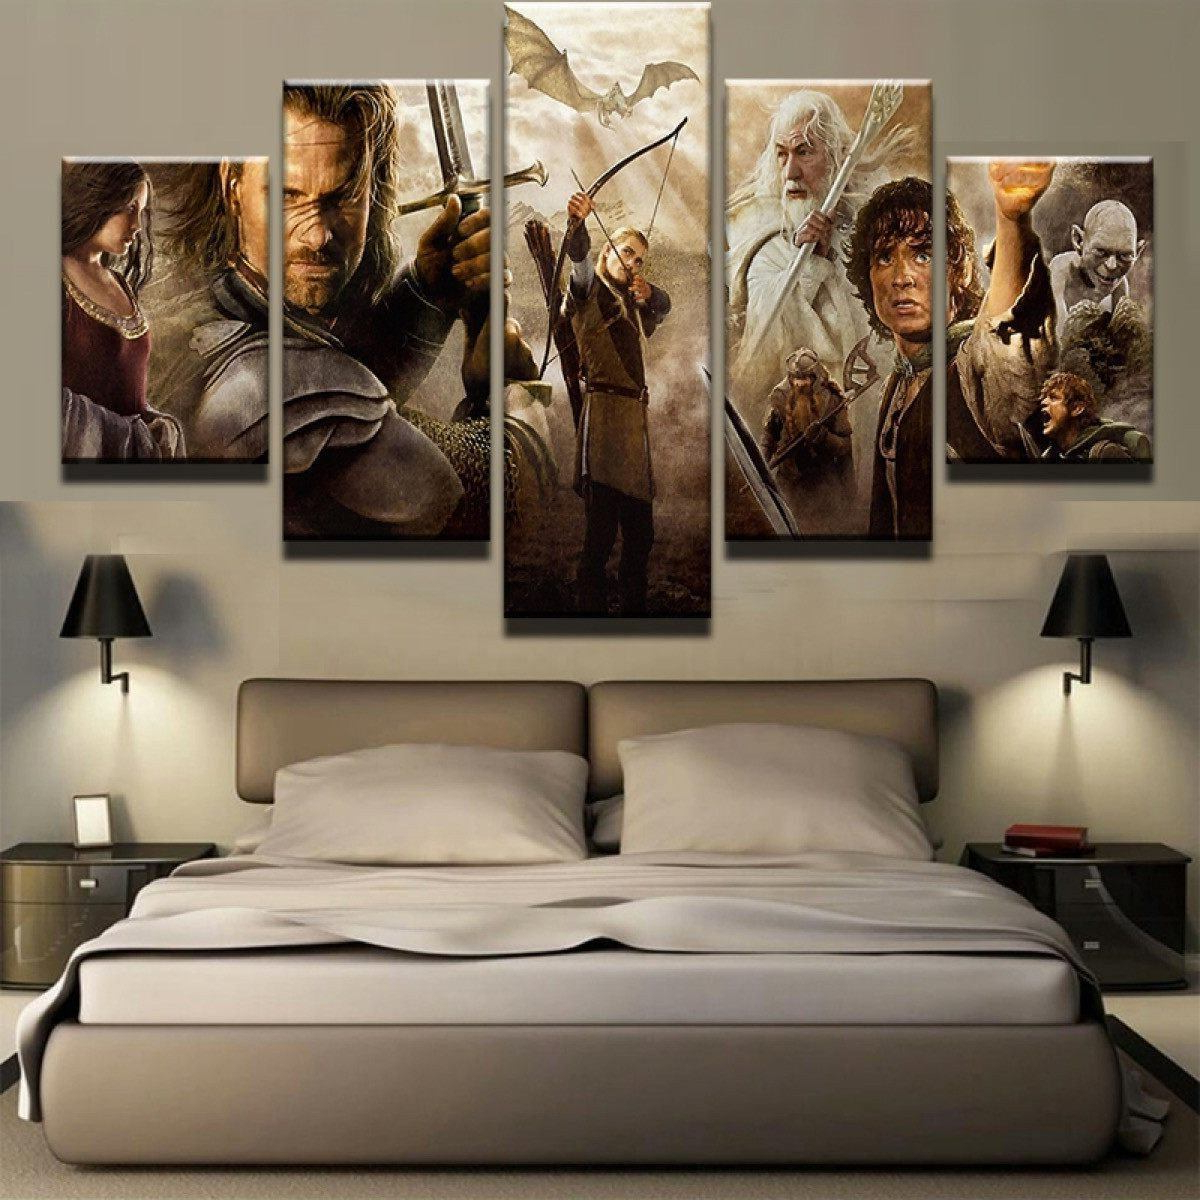 Most Recent The Lord Of The Rings 01 – Movie 5 Panel Canvas Art Wall Decor In Rings Wall Decor (Gallery 16 of 20)